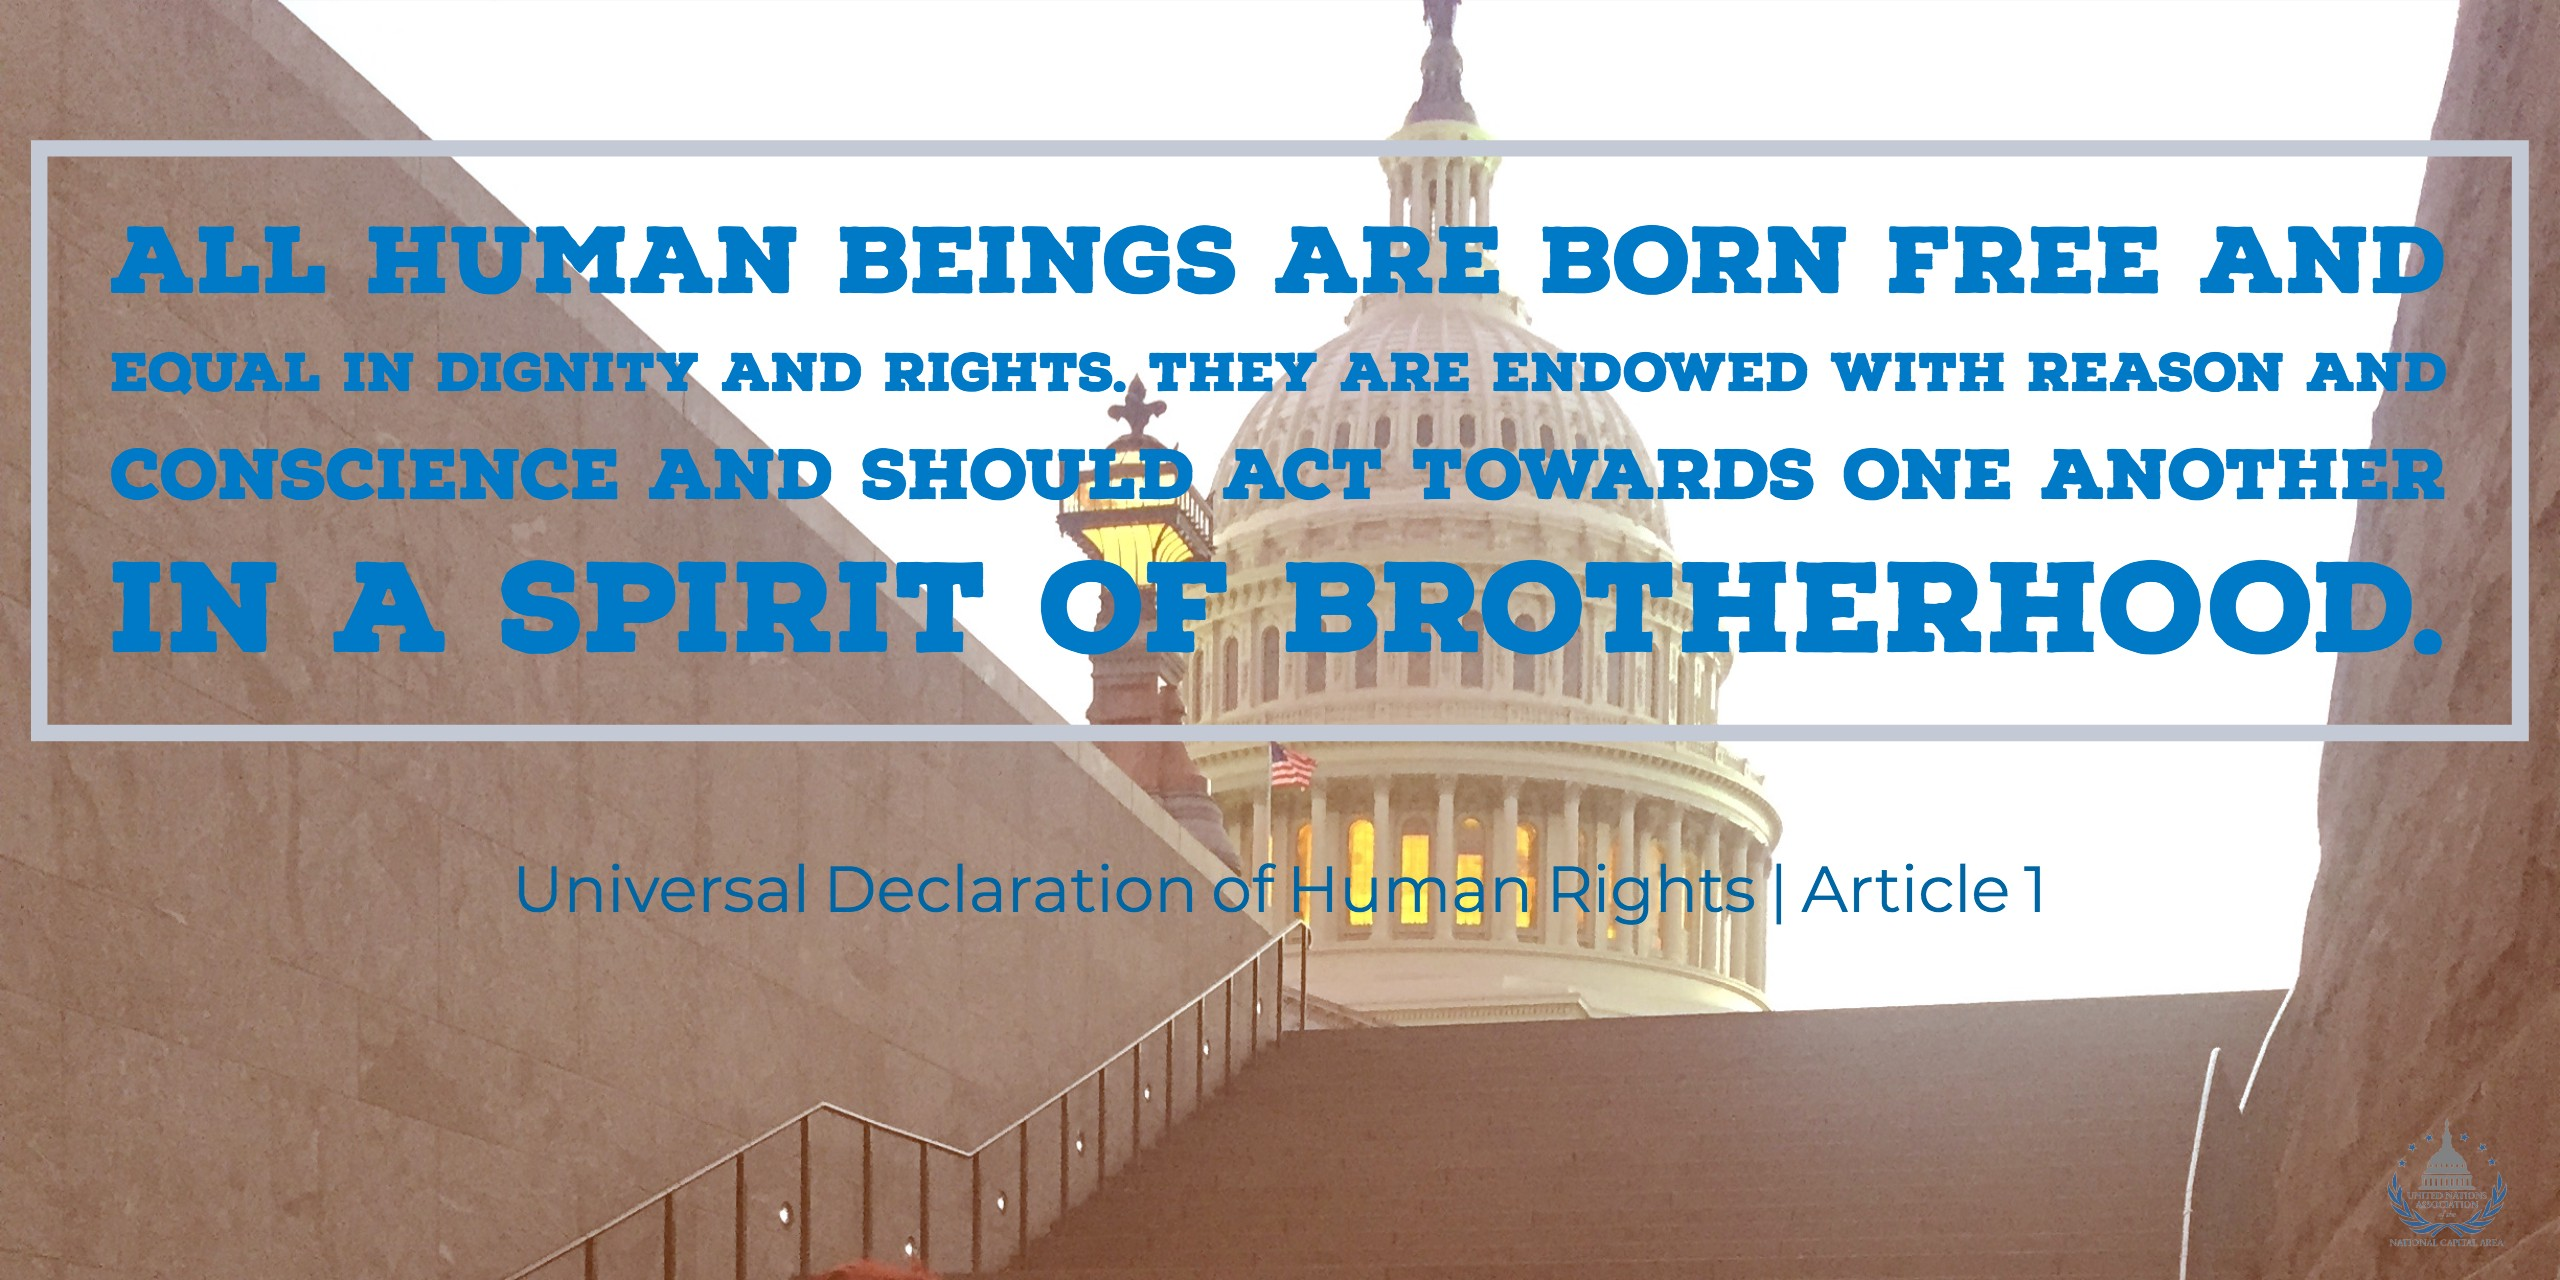 born free and equal in dignity and rights